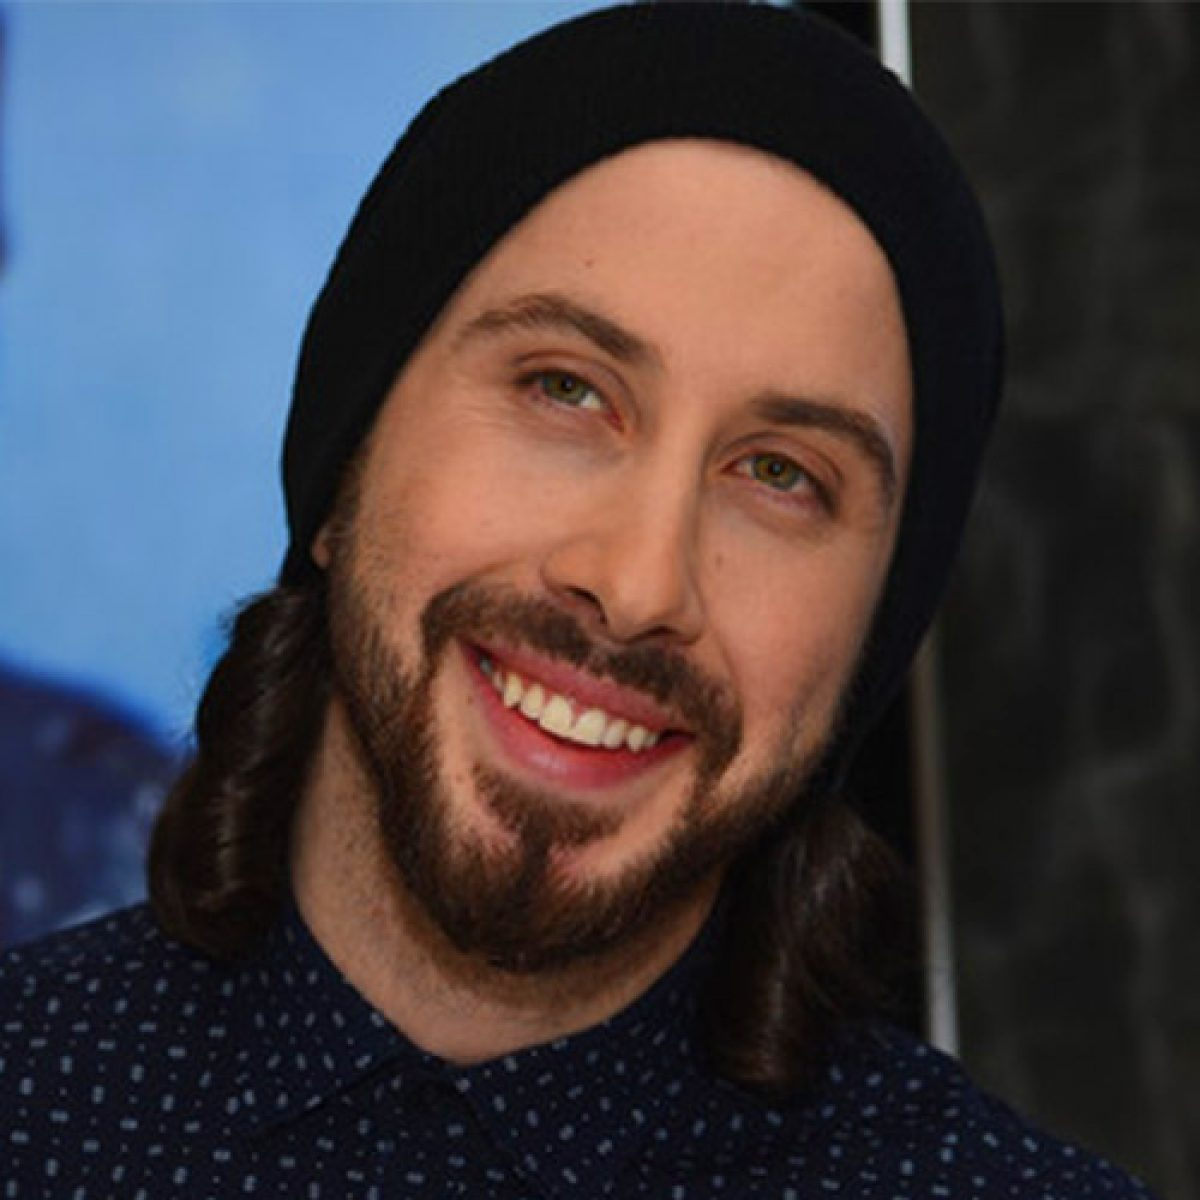 The 31-year old son of father (?) and mother(?) Avi Kaplan in 2020 photo. Avi Kaplan earned a million dollar salary - leaving the net worth at million in 2020